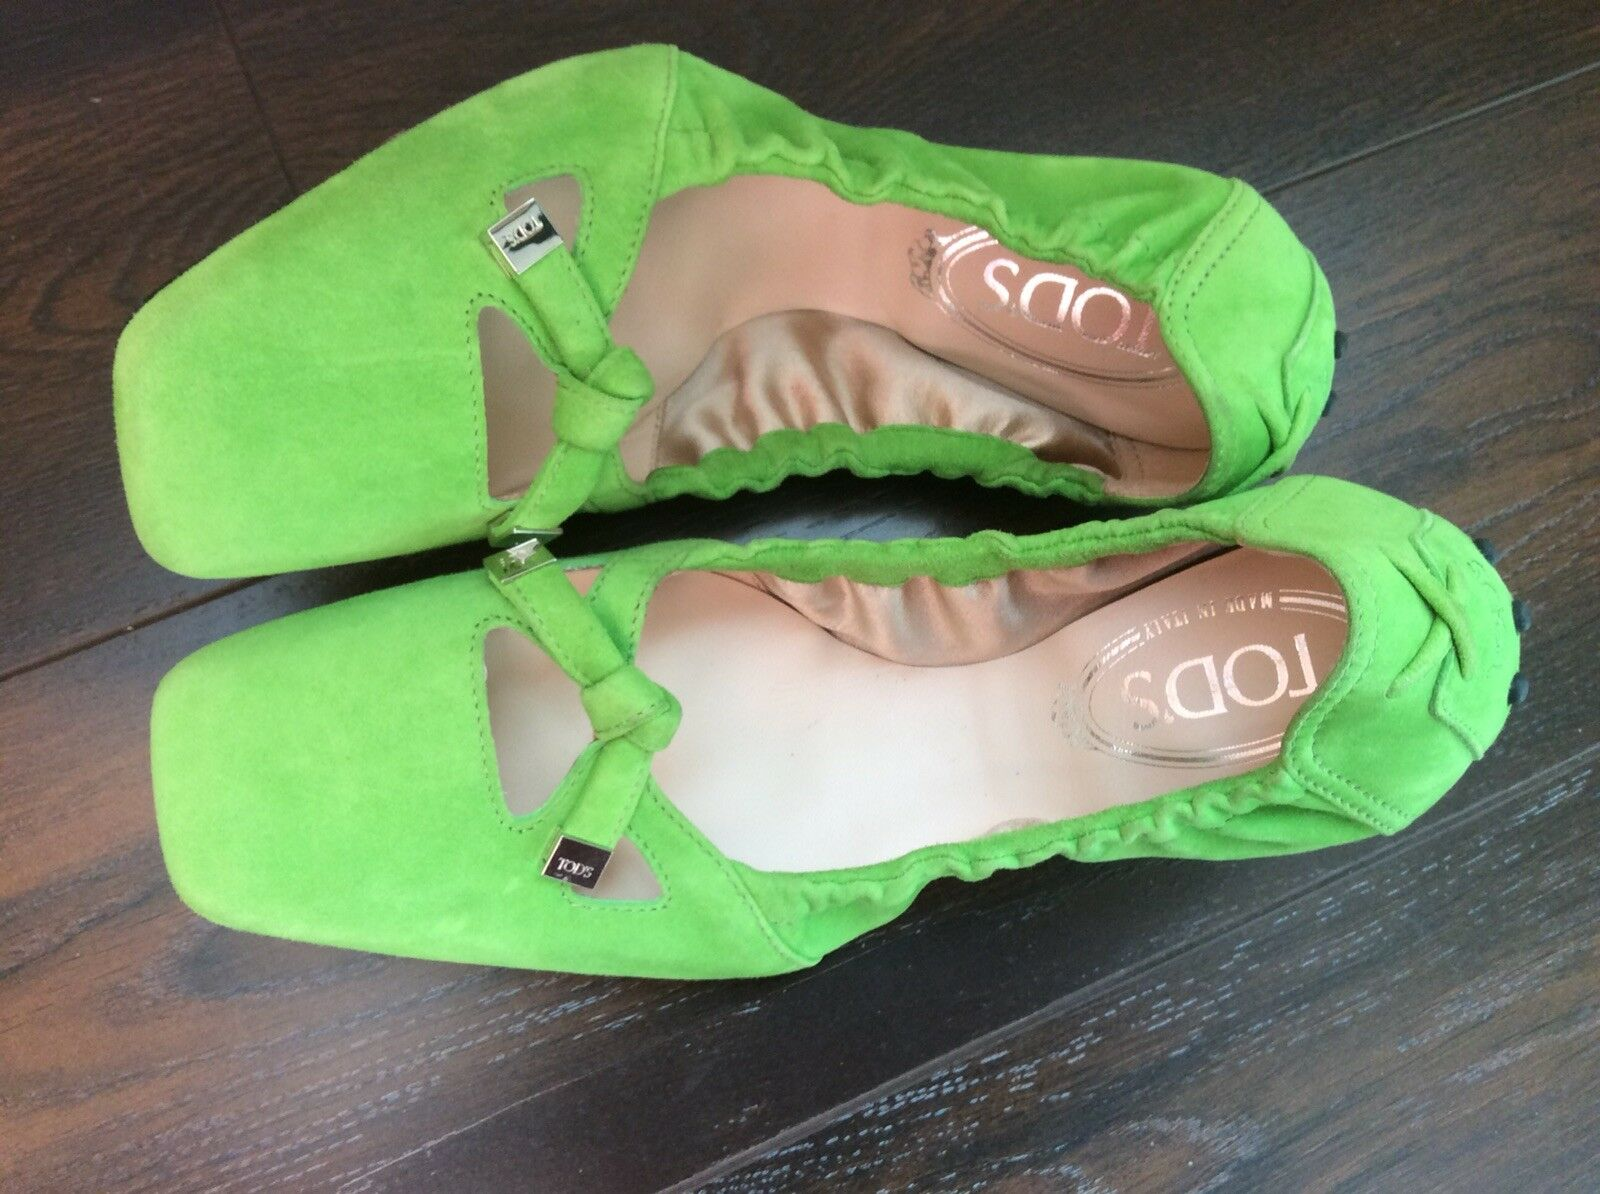 TODS TODS TODS Ballerina Ballet Flats Driving Square Toe Bow Tie Scrunch shoes Size 7.5 4b64ab